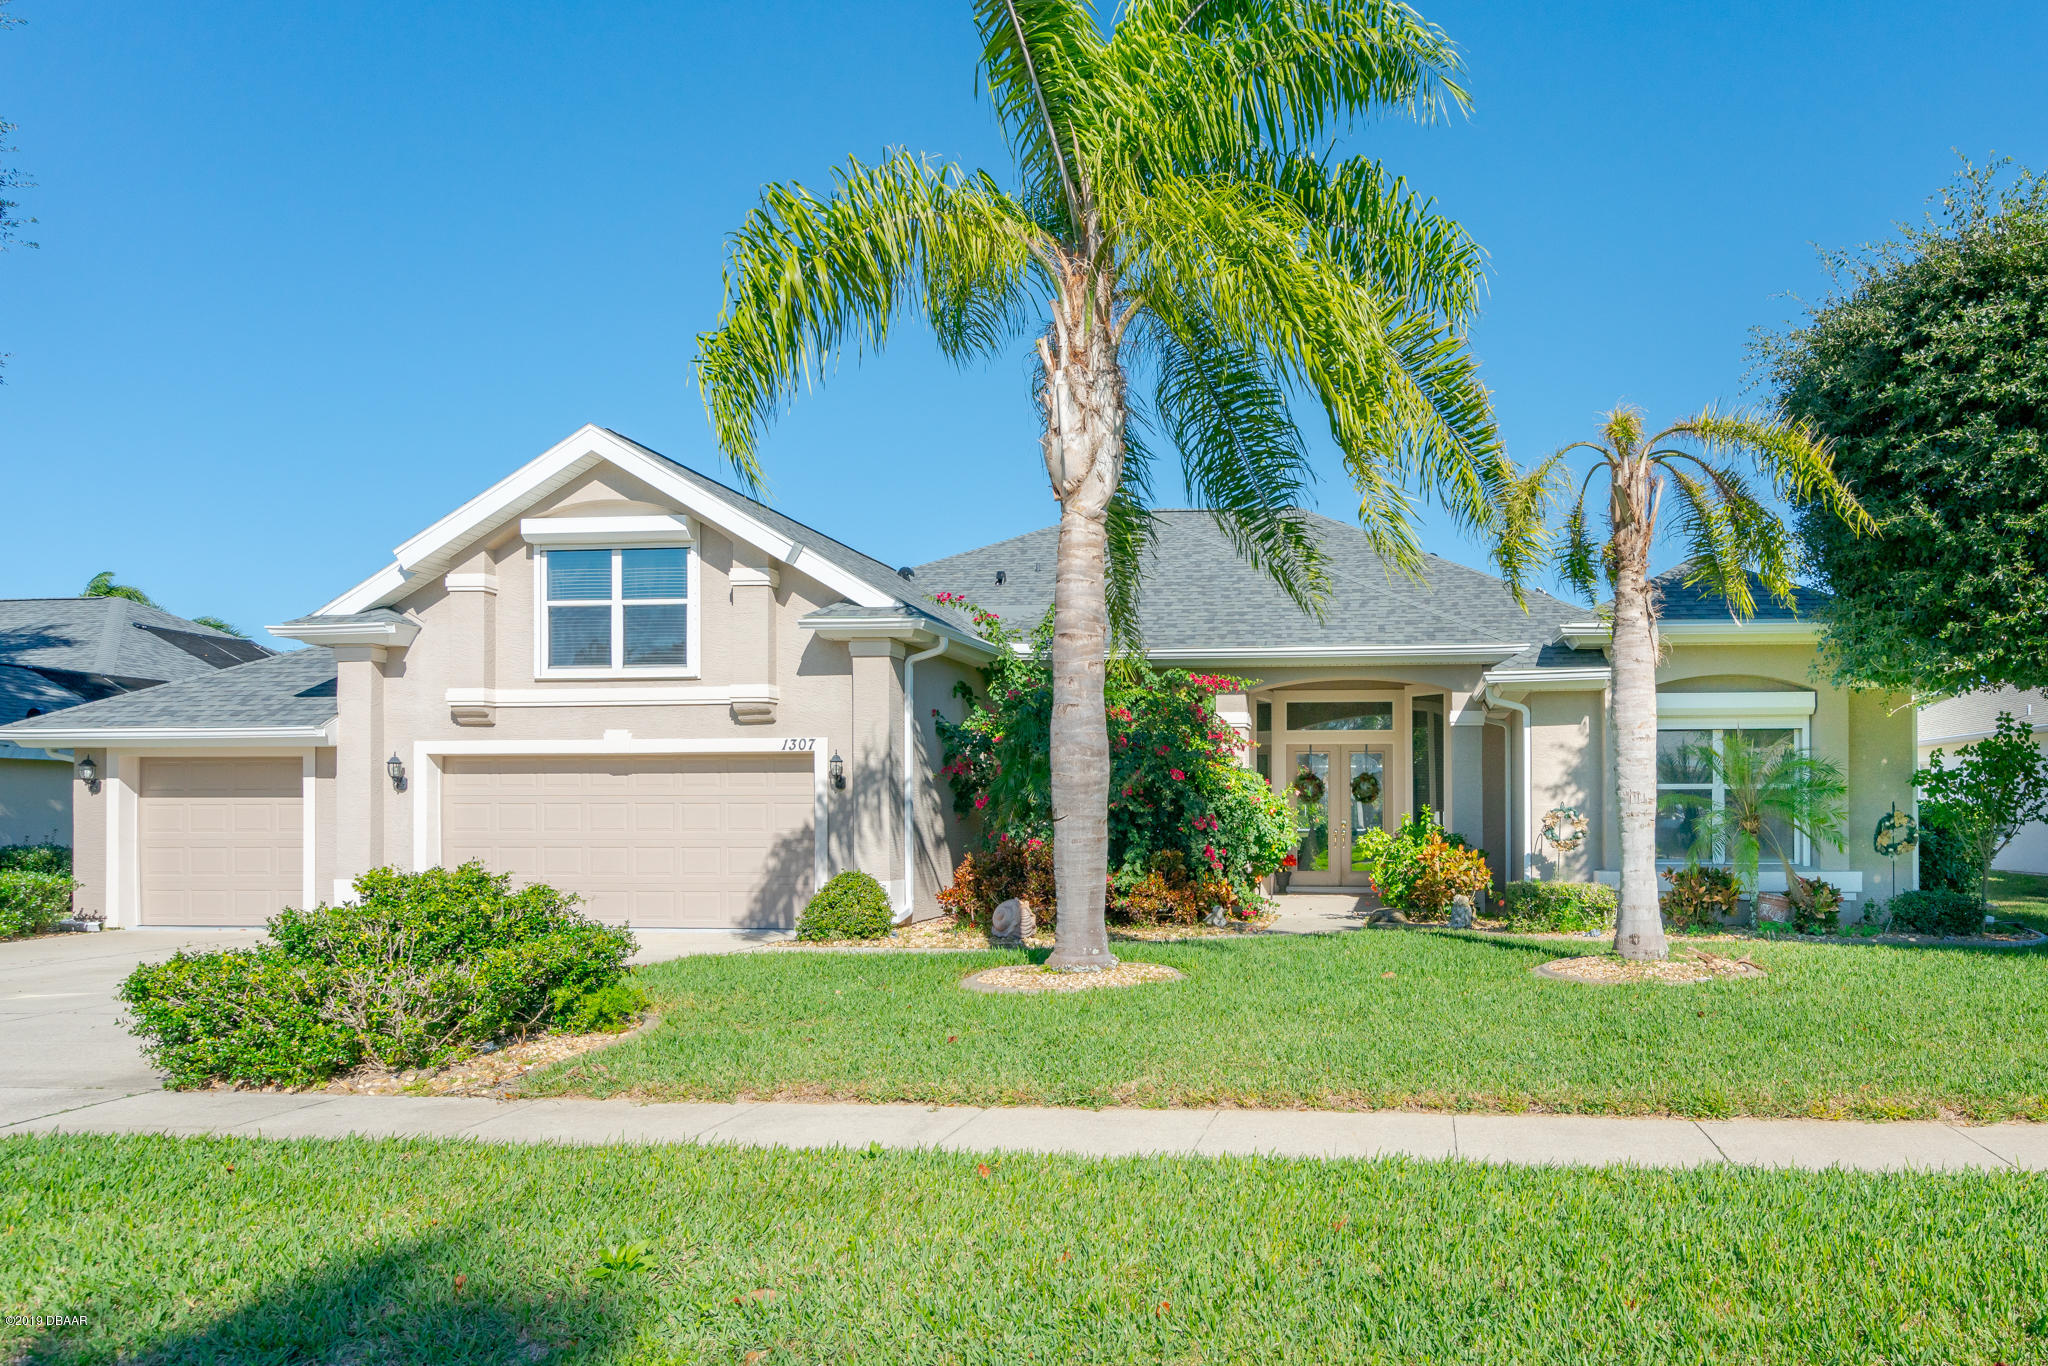 Photo of 1307 Crepe Myrtle Lane, Port Orange, FL 32128